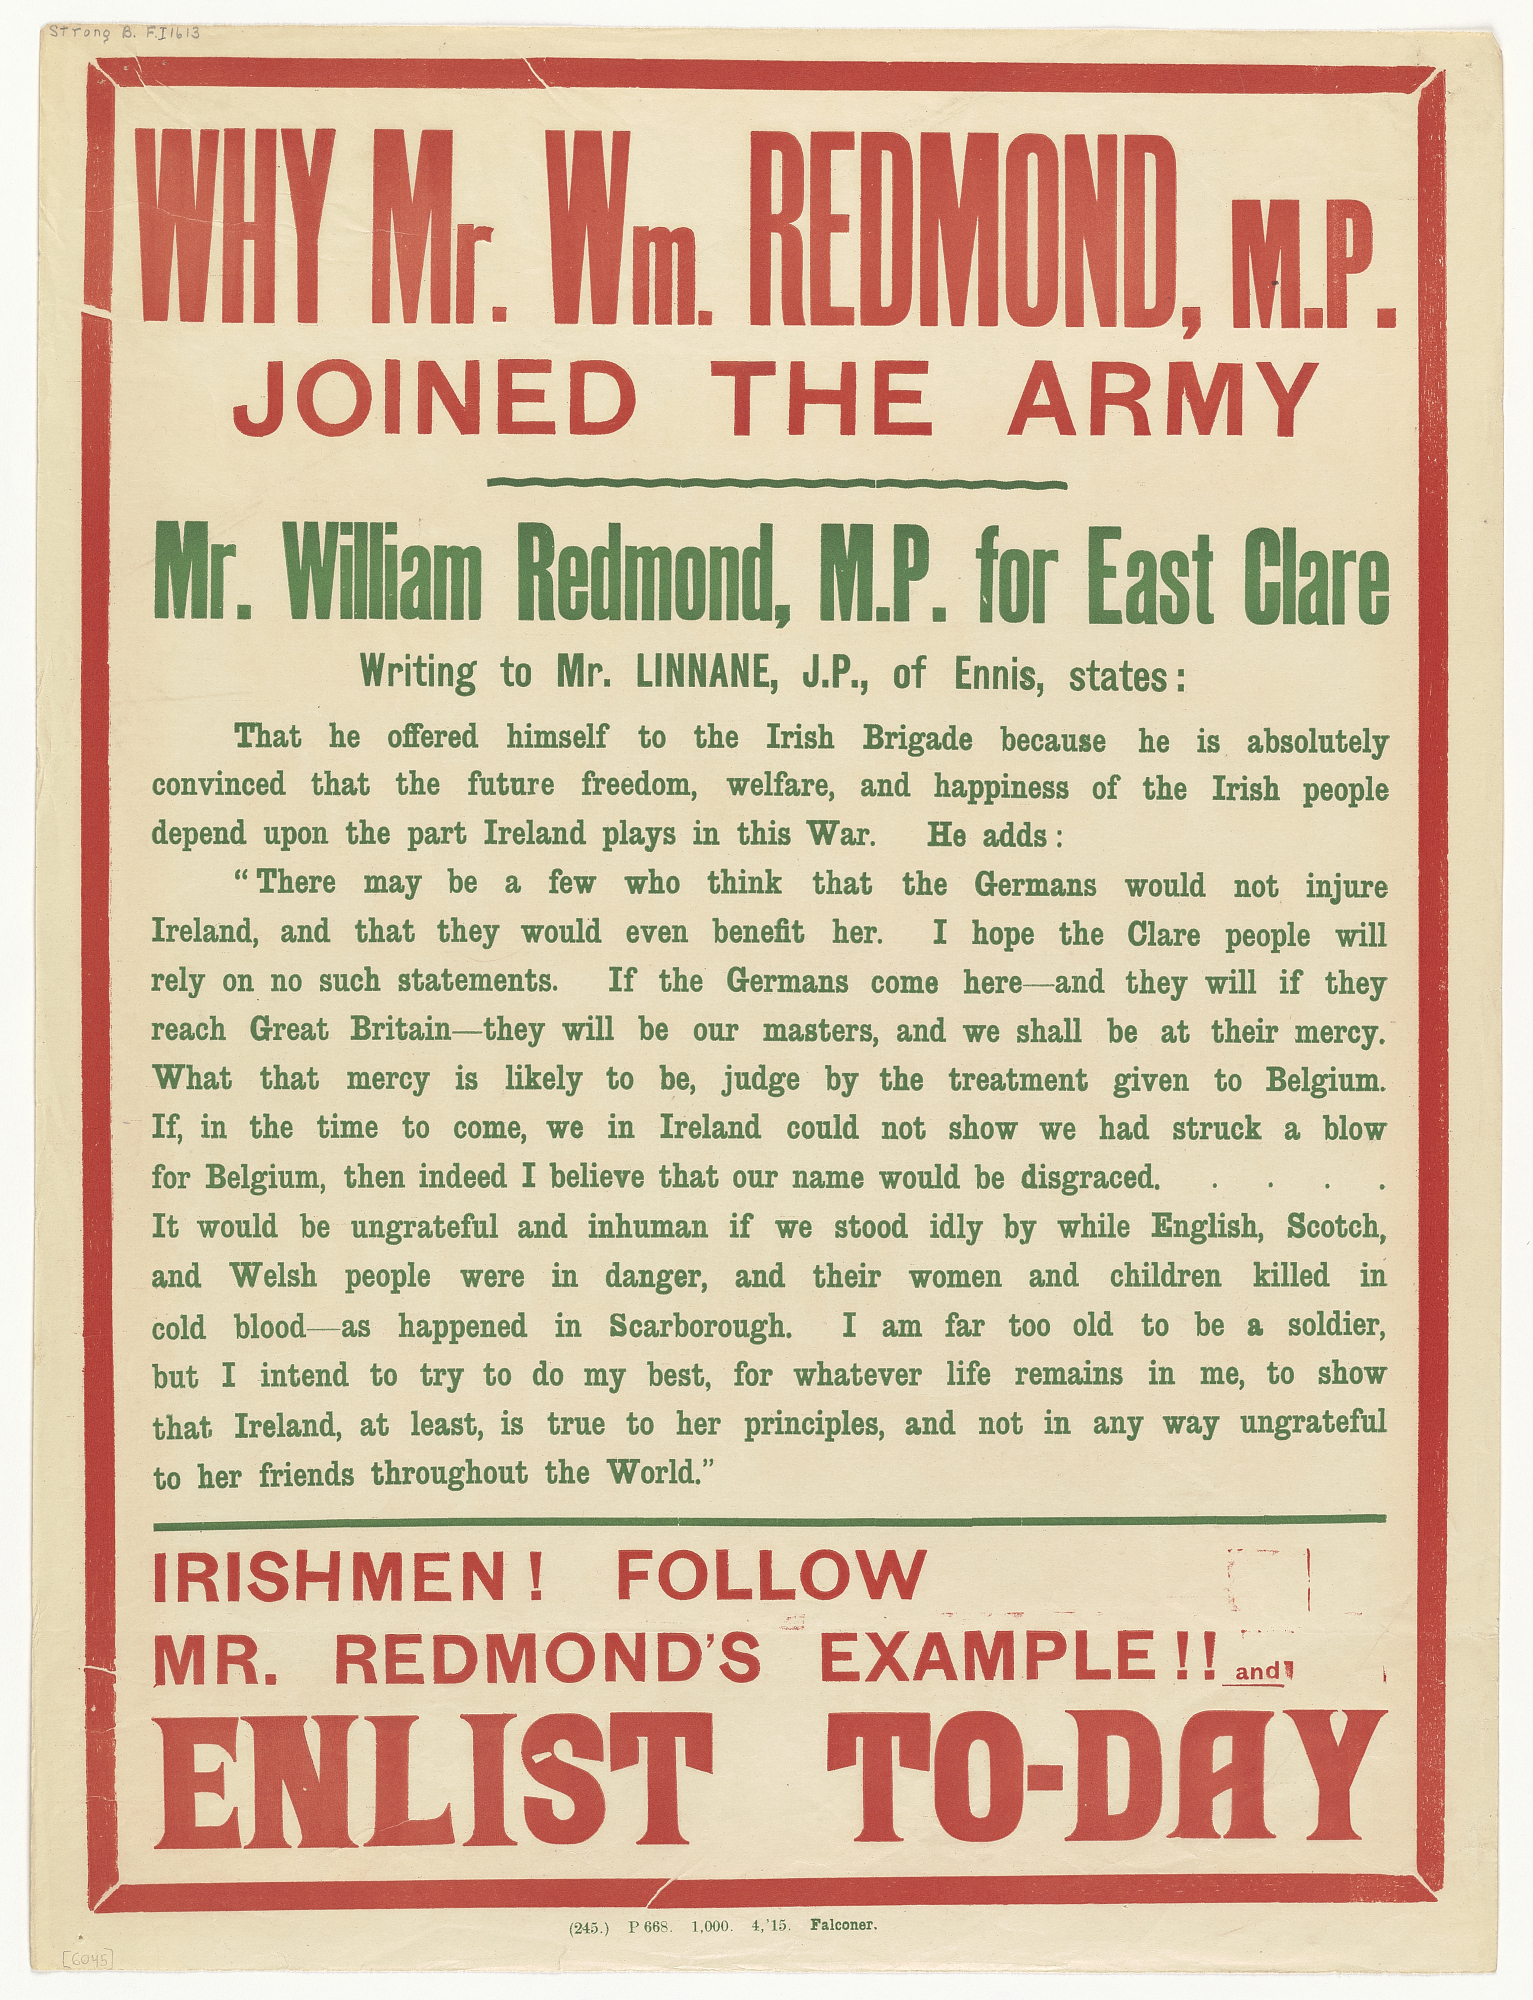 Why Mr. Wm. Redmond, M.P. Joined the Army ... Irishmen! Follow Mr. Redmond's Example!! And Enlist To-Day